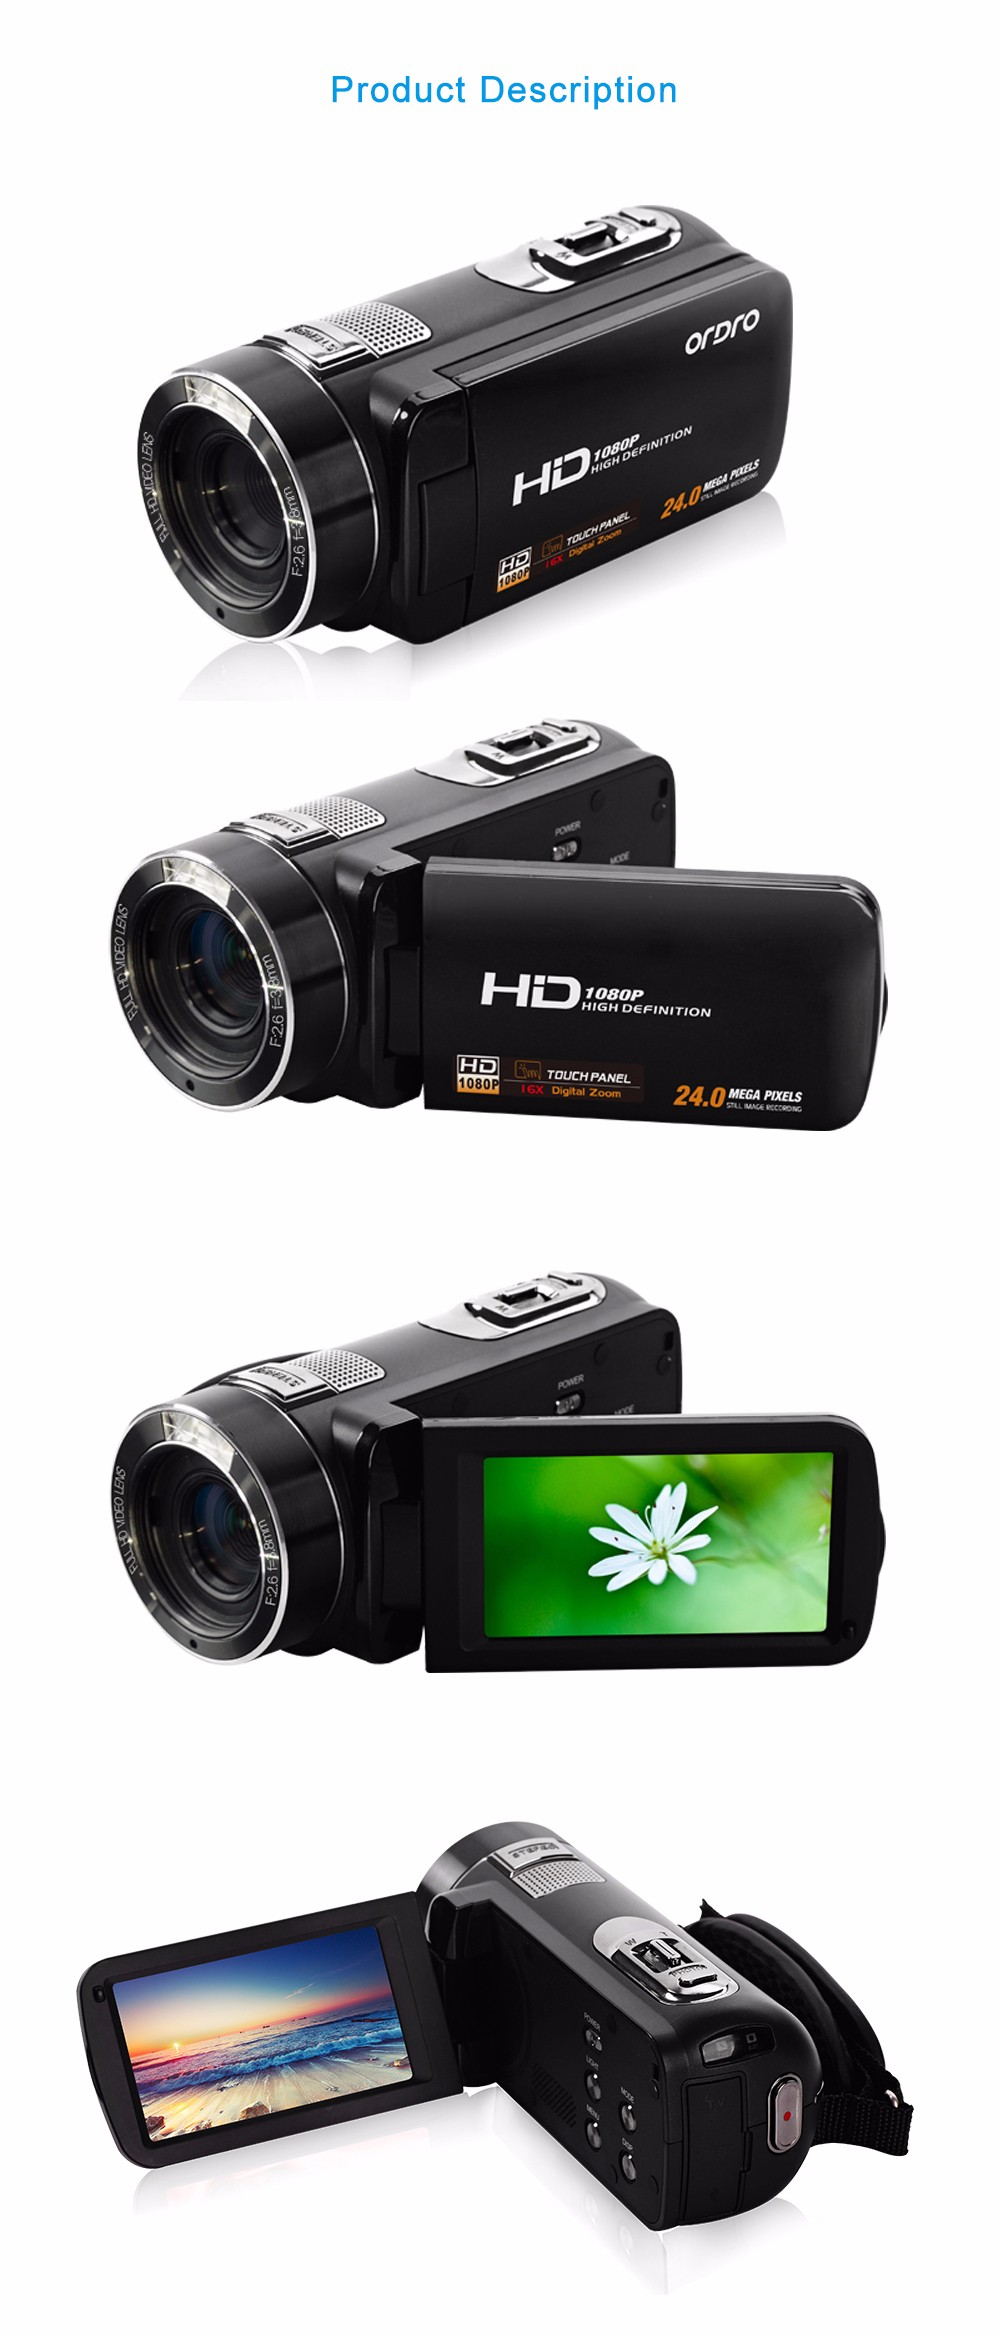 "Ordro Camcorder HDV-Z8 Plus 1080P FHD Digital Video Camera 3.0"" LCD Touch Screen with Remote Control USB Port HDMI Output 12"